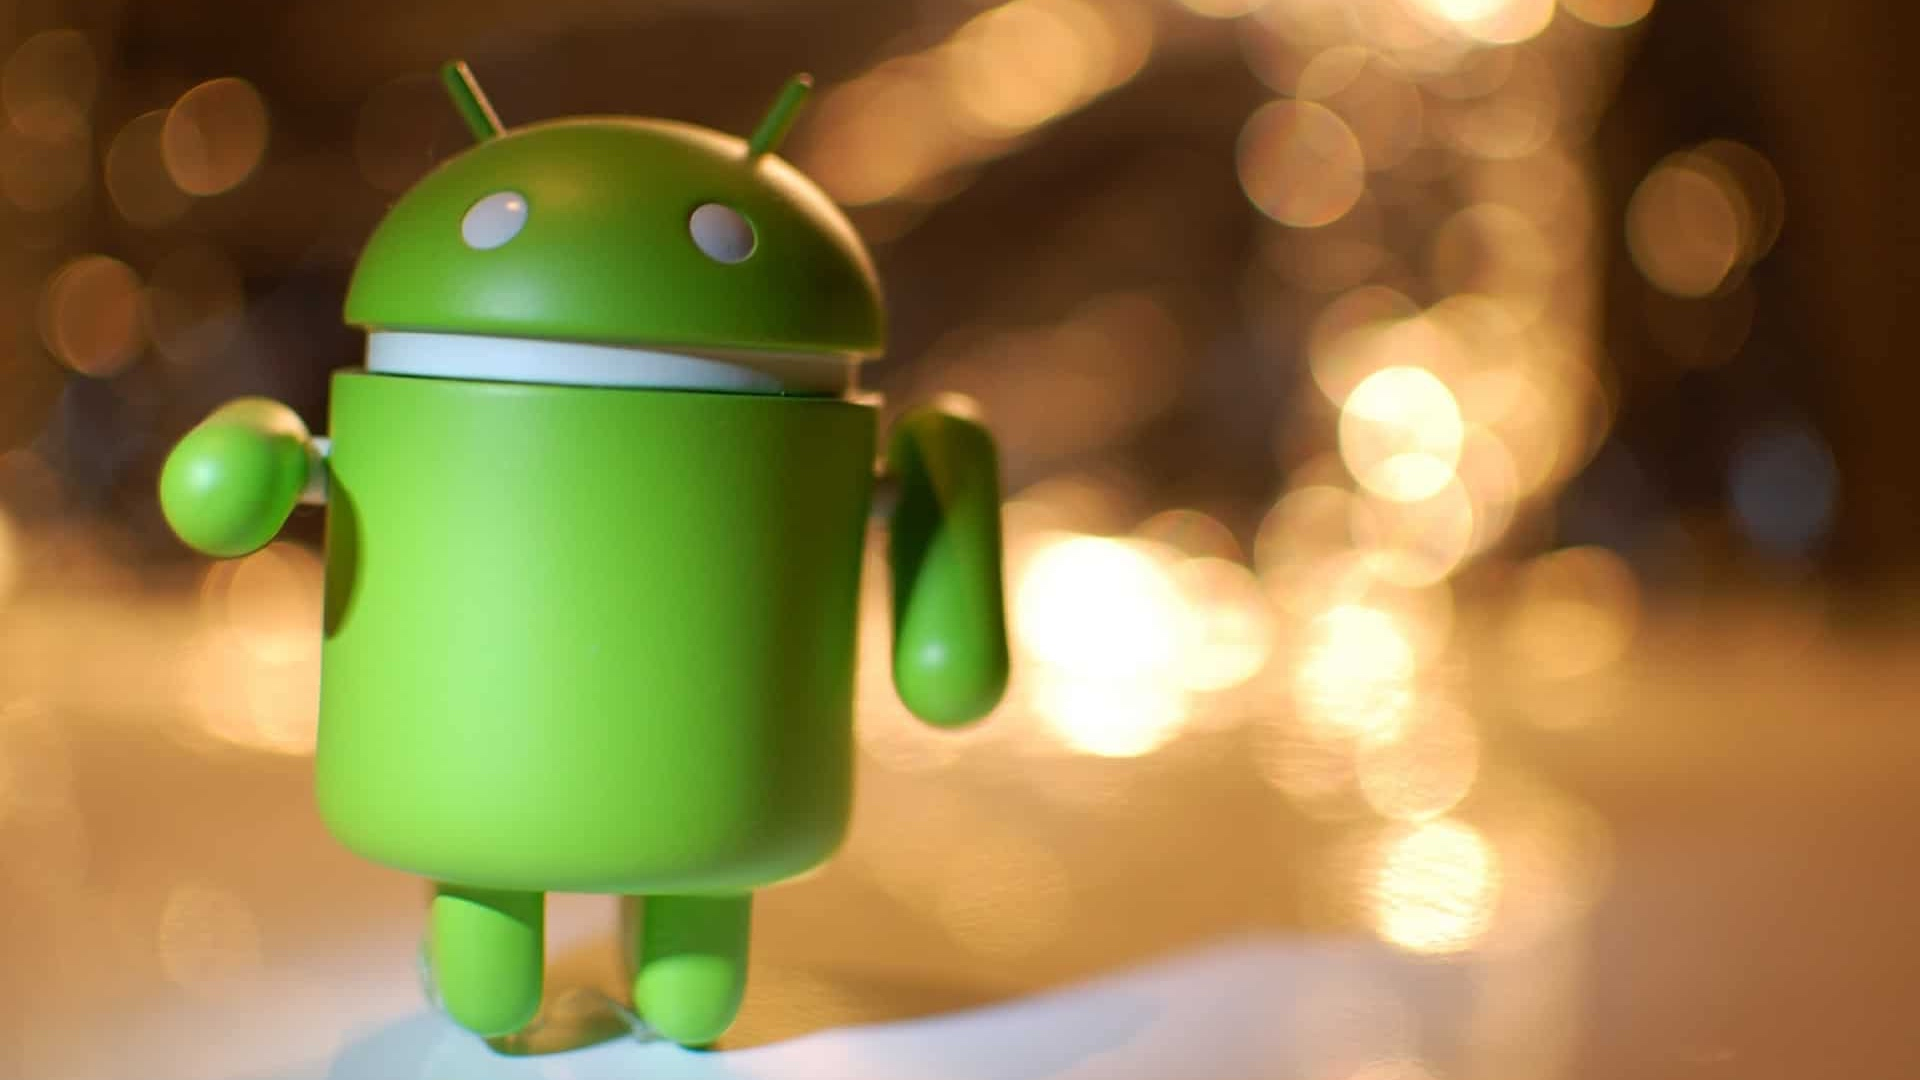 Android Q release date, features and rumors